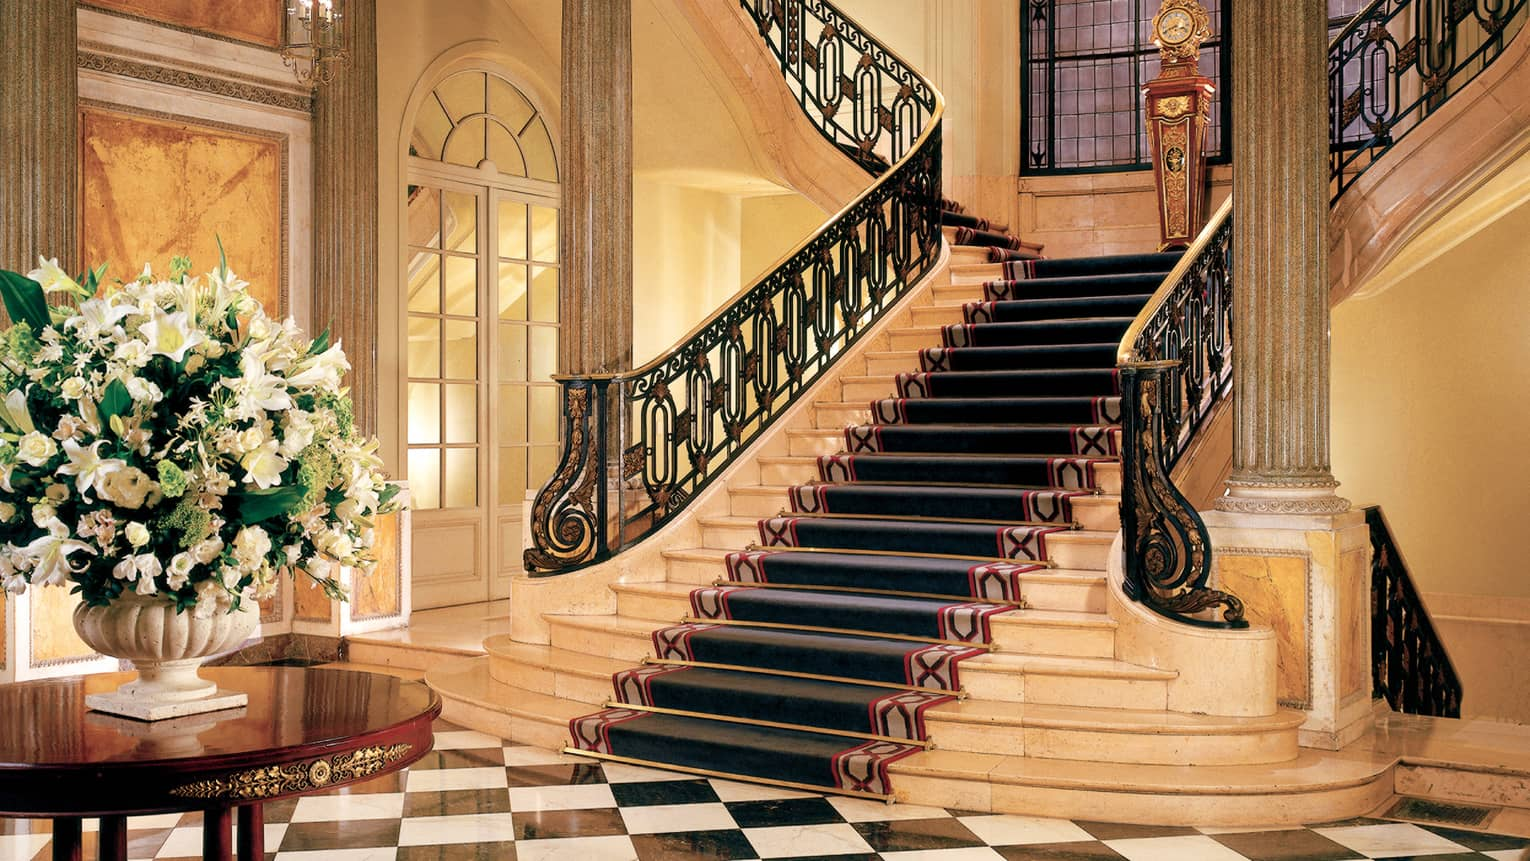 Sweeping marble staircase leading to black-and-white checkered tile floors, table with white floral display